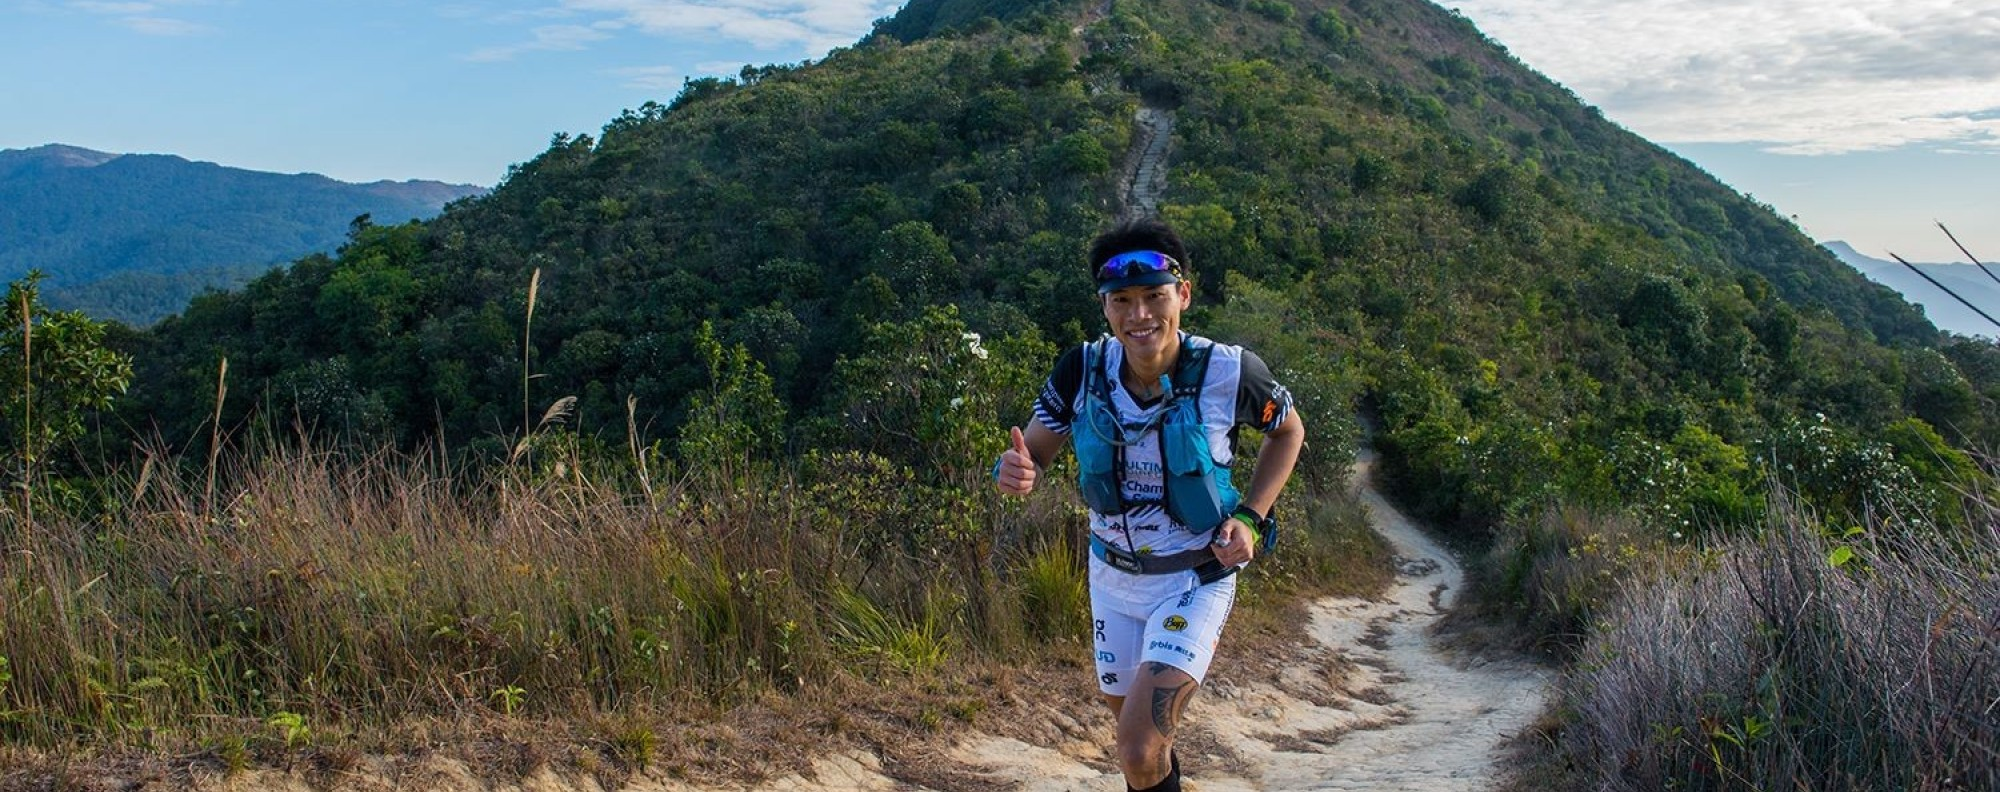 Wong Ho-fai is a good runner because he took to the trails to escape reality. Photos: Handout